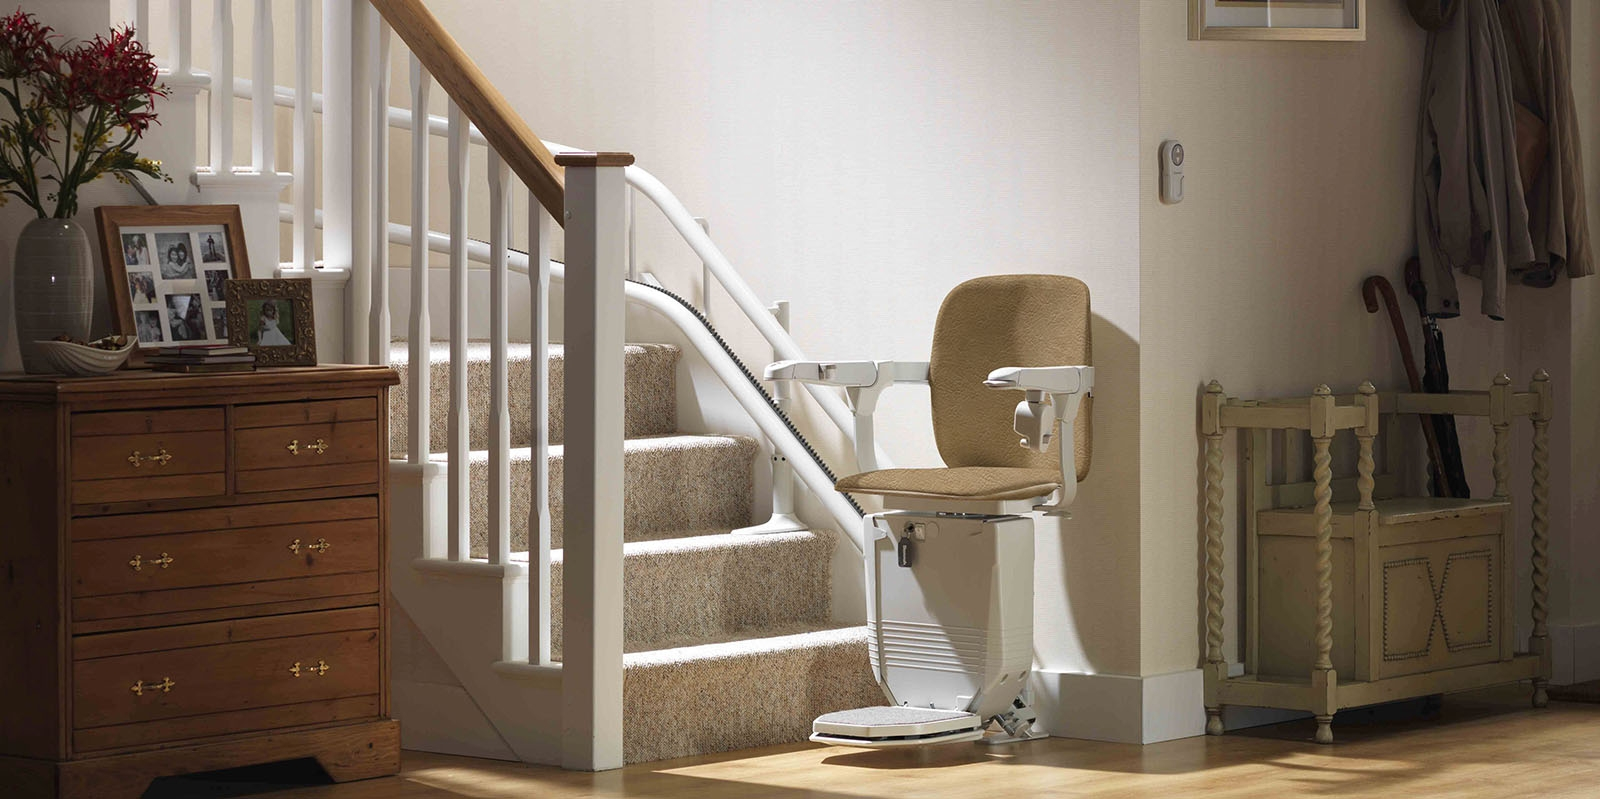 2020 Stair Lift Prices How Much Does A Stair Lift Cost | Chair Rail On Stairs | Double | Traditional | Stained Wood | Remodeling | Wainscoting